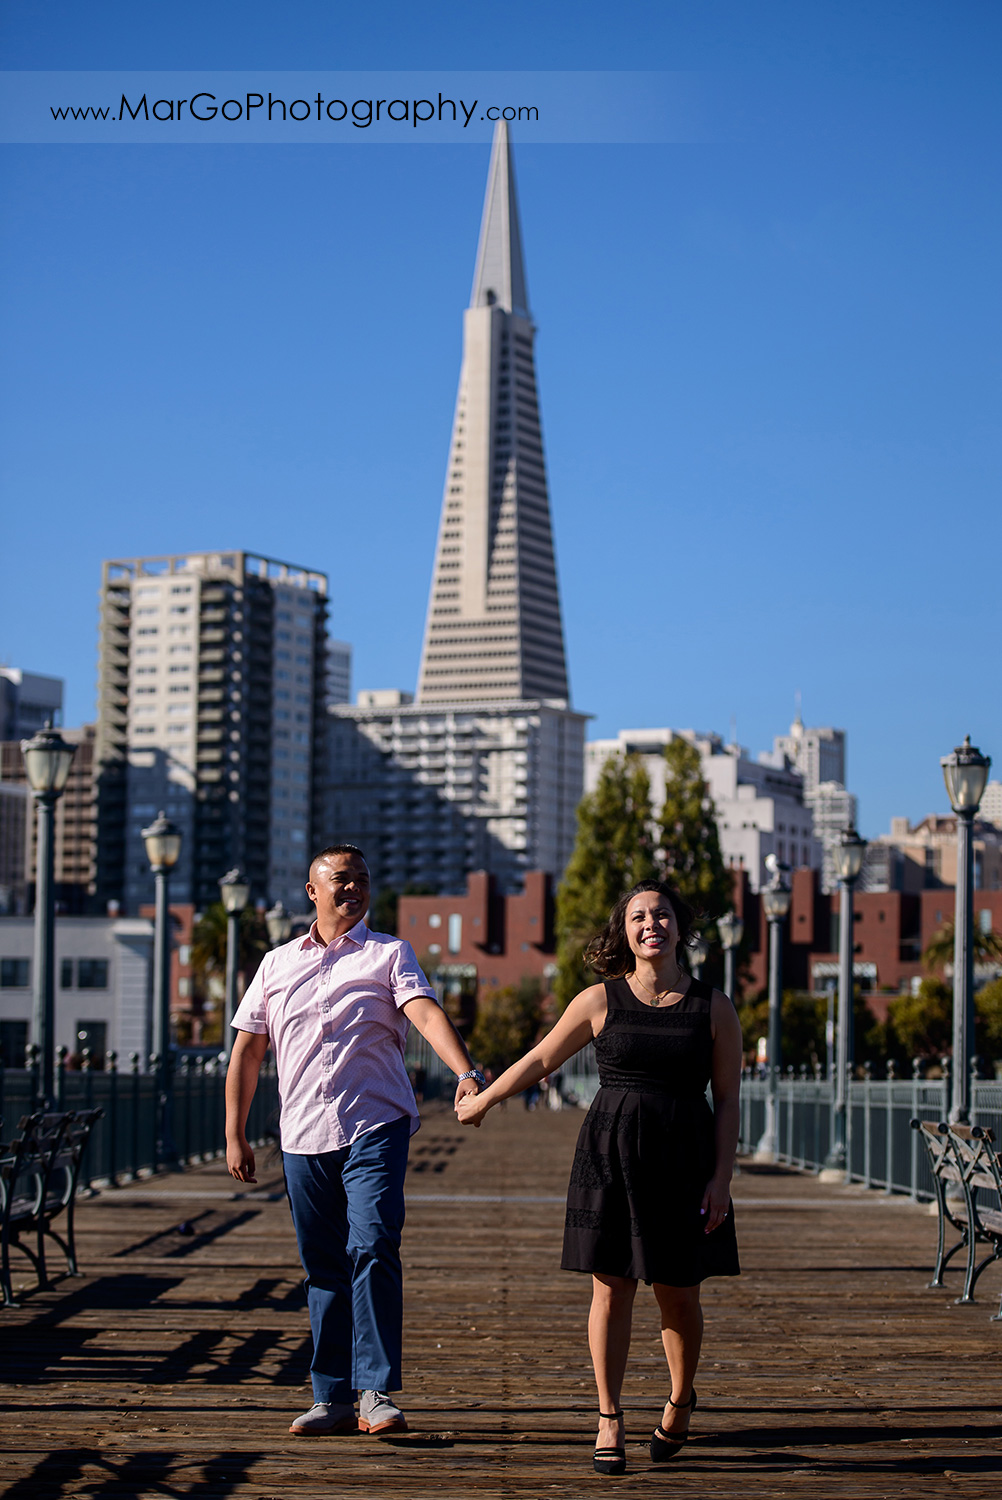 engagement session at Pier 7 in San Francisco - couple walking with the Transamerica Pyramid in the background